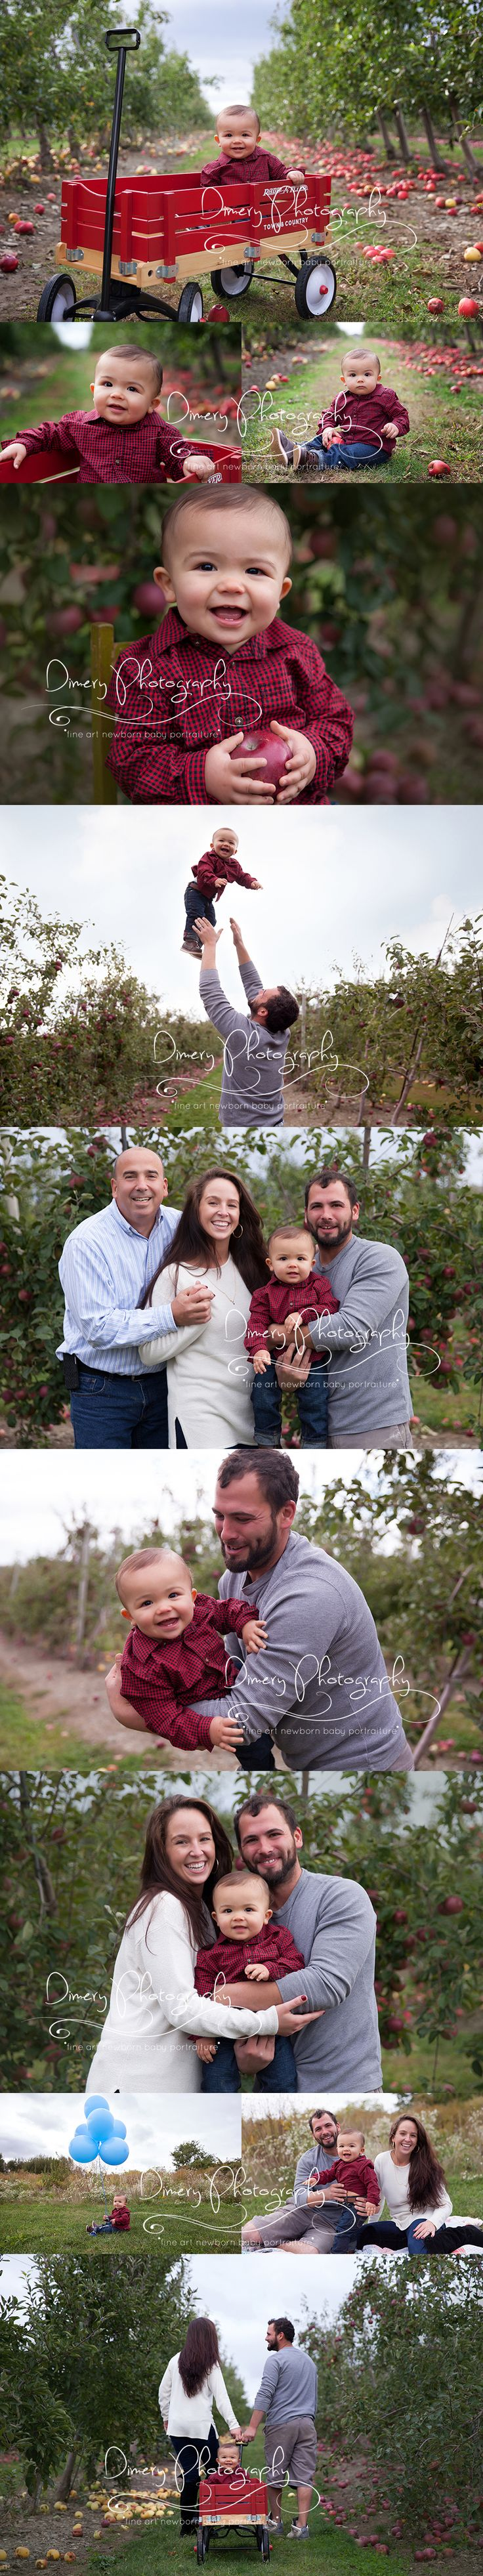 apple orchard family portraits, outdoor baby photography, fall photography, baby in wagon pose, one year old baby  © Dimery Photography 2015